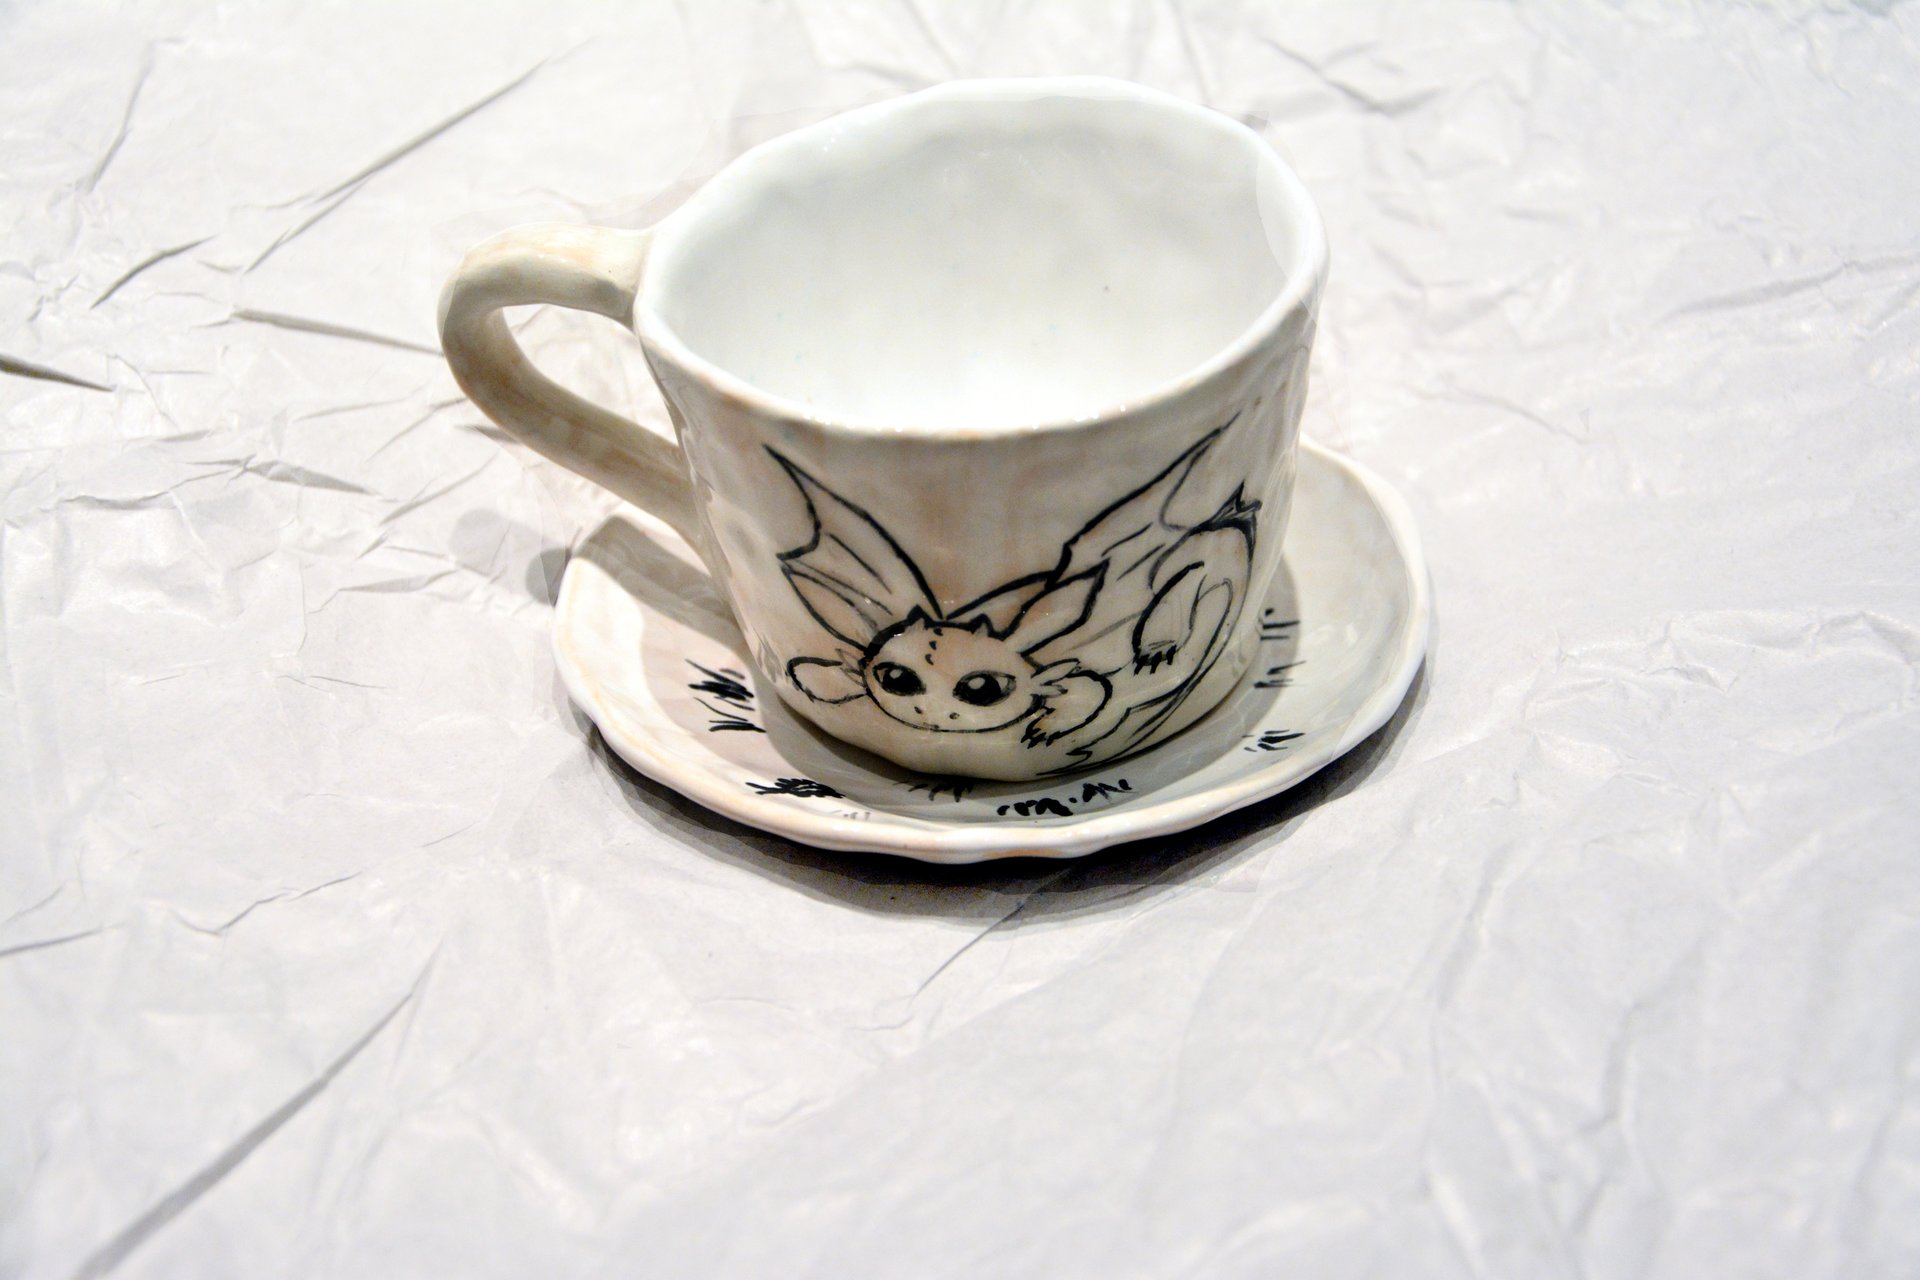 A cup with the Toothless - Cups, glasses, mugs, 80 ml, photo 1 of 3.